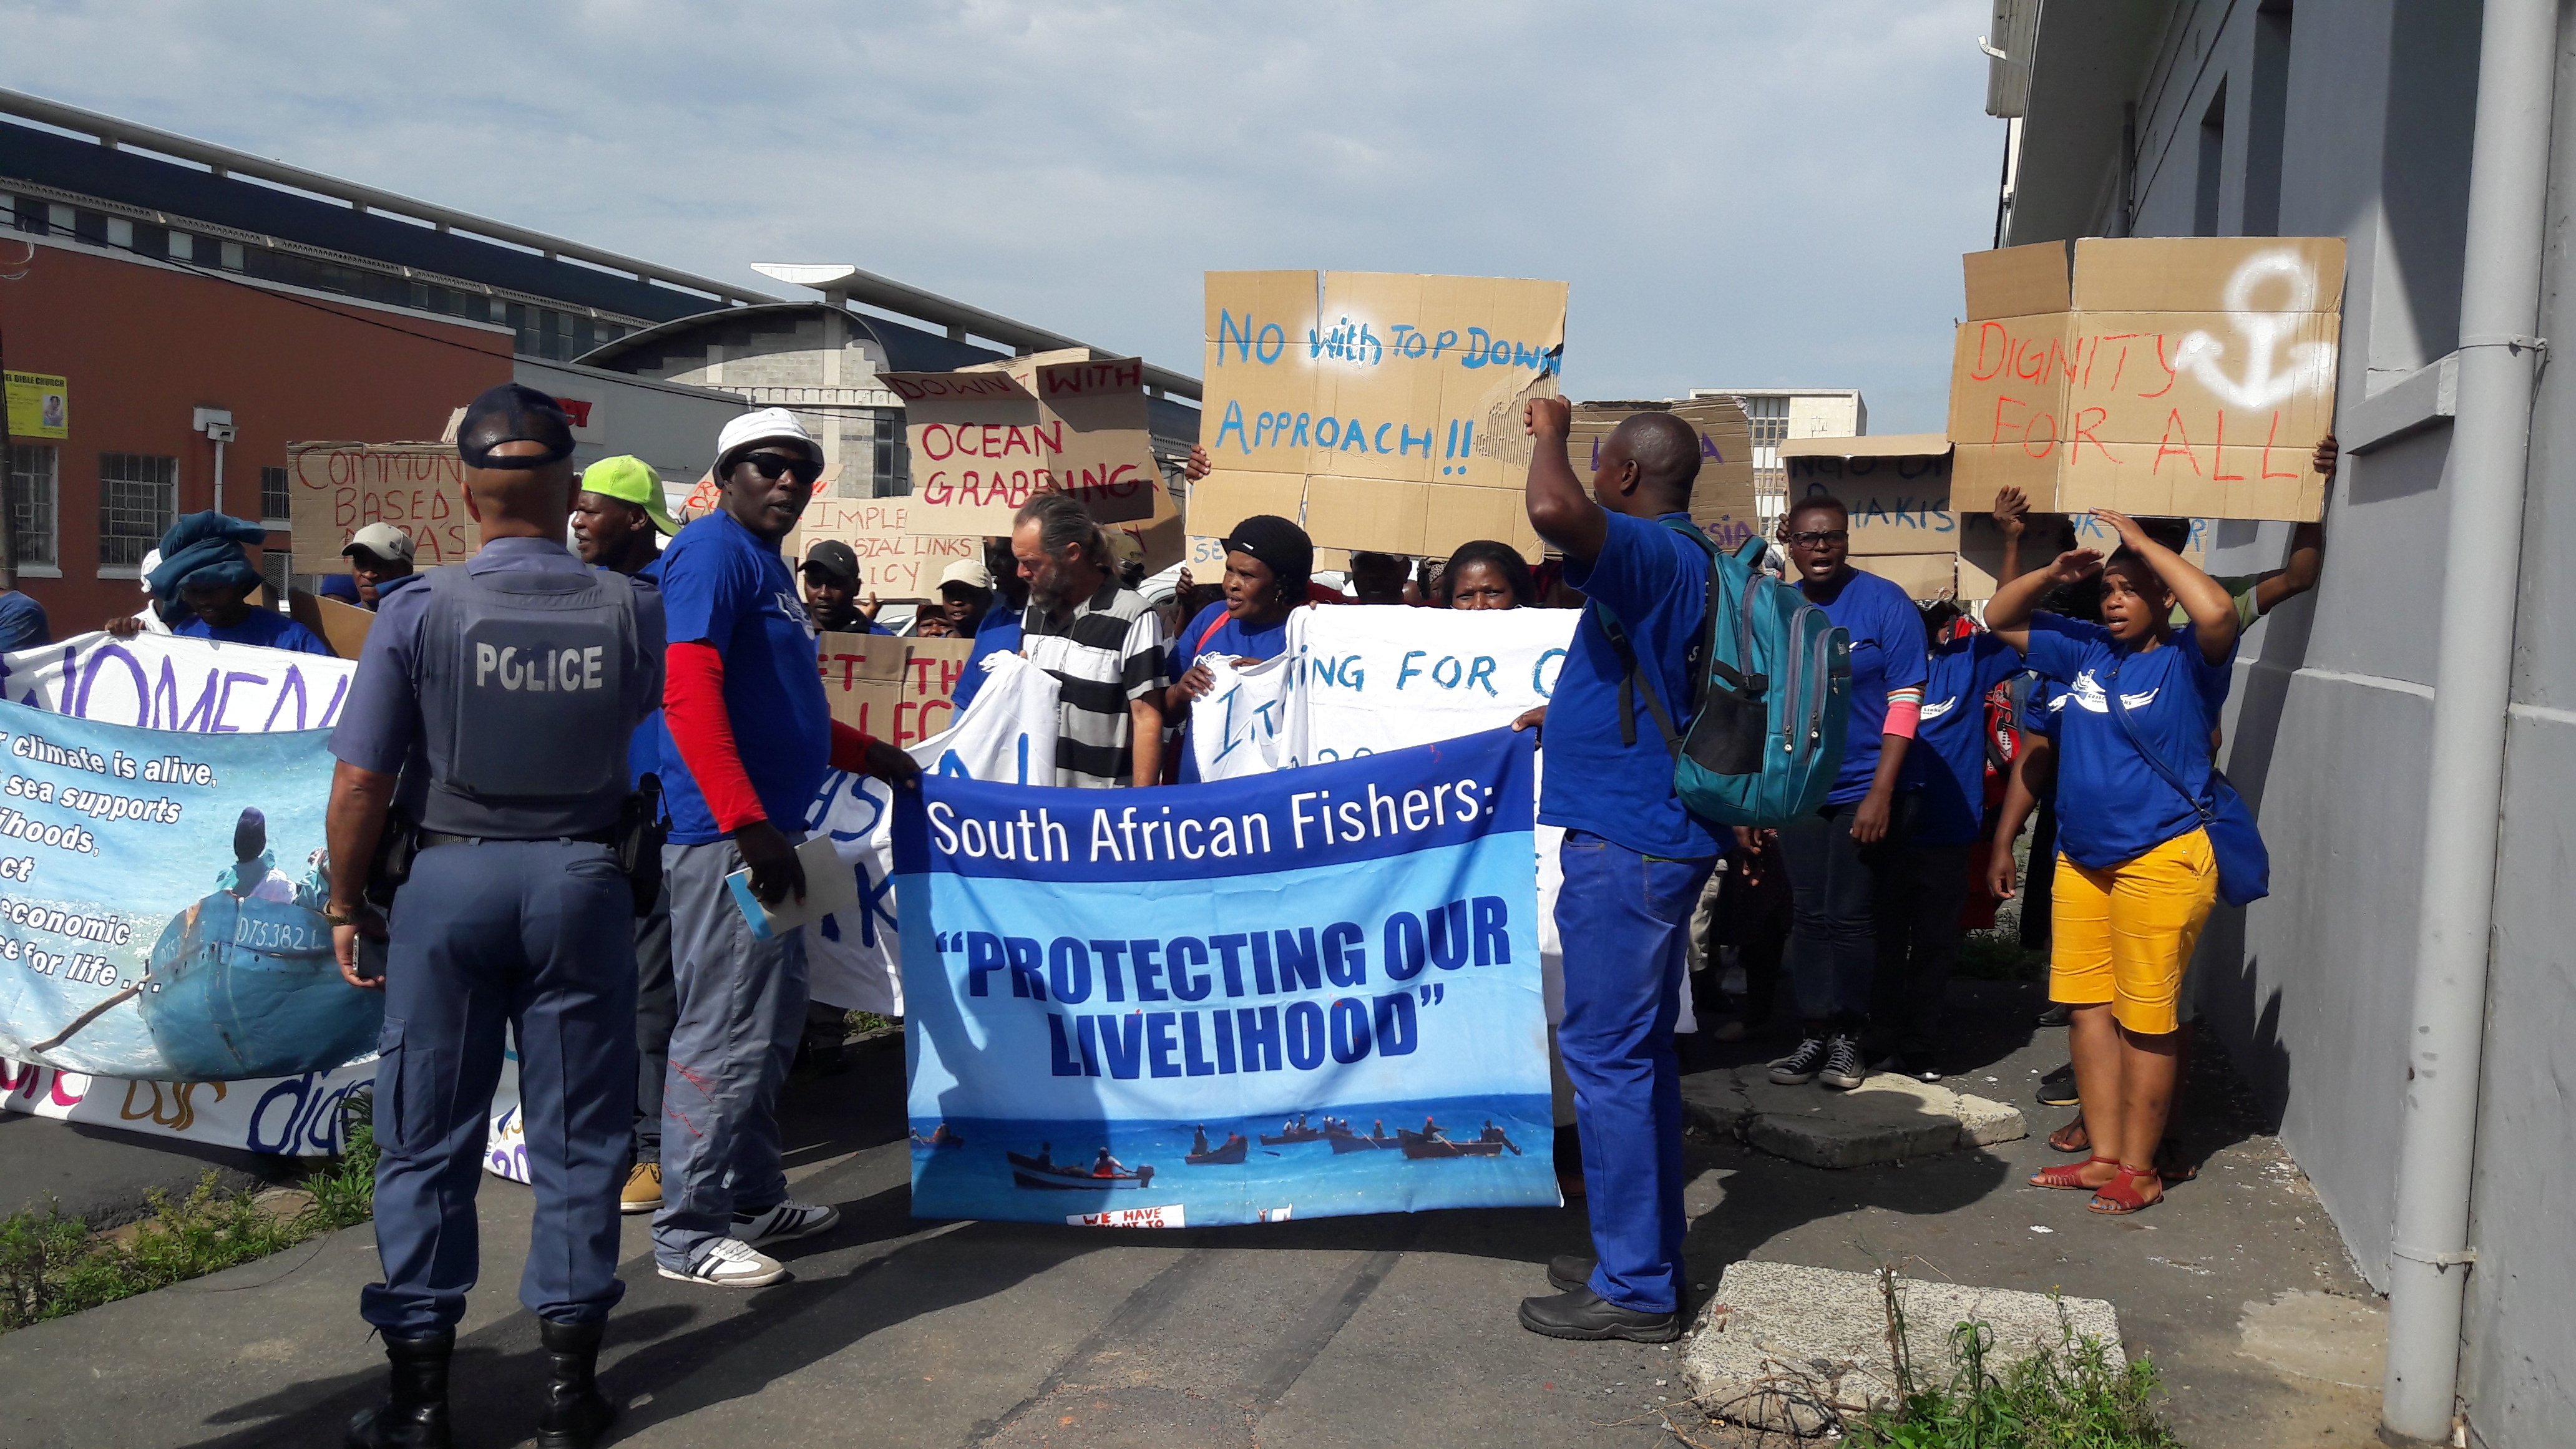 Coastal communities and small-scale fishers in South Africa voice their concerns about the exploitation of the ocean economy on World Fisheries Day